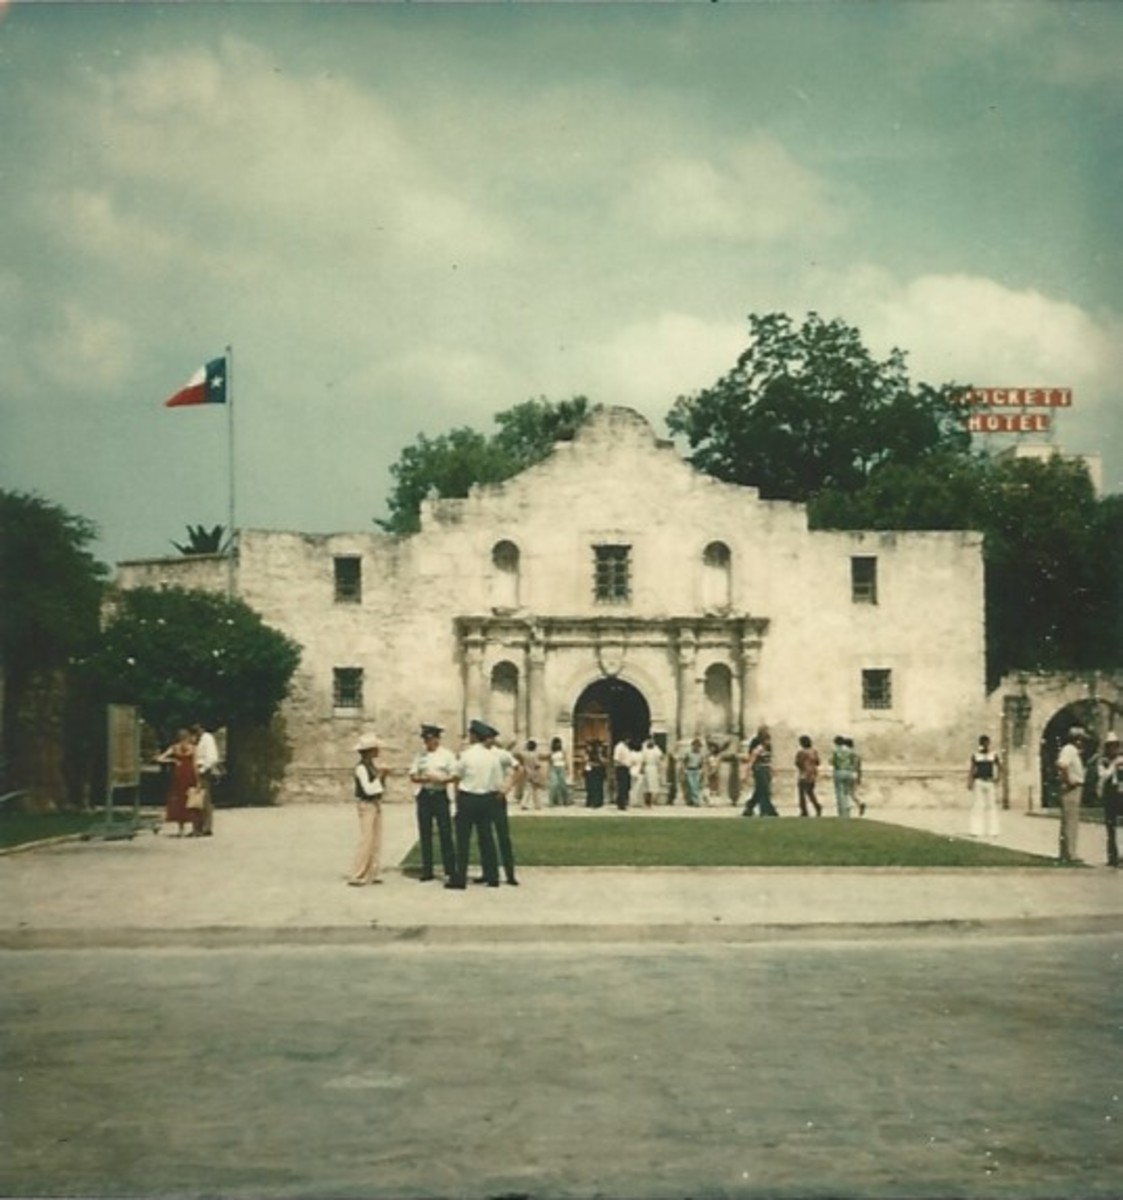 The Alamo in the 1970s